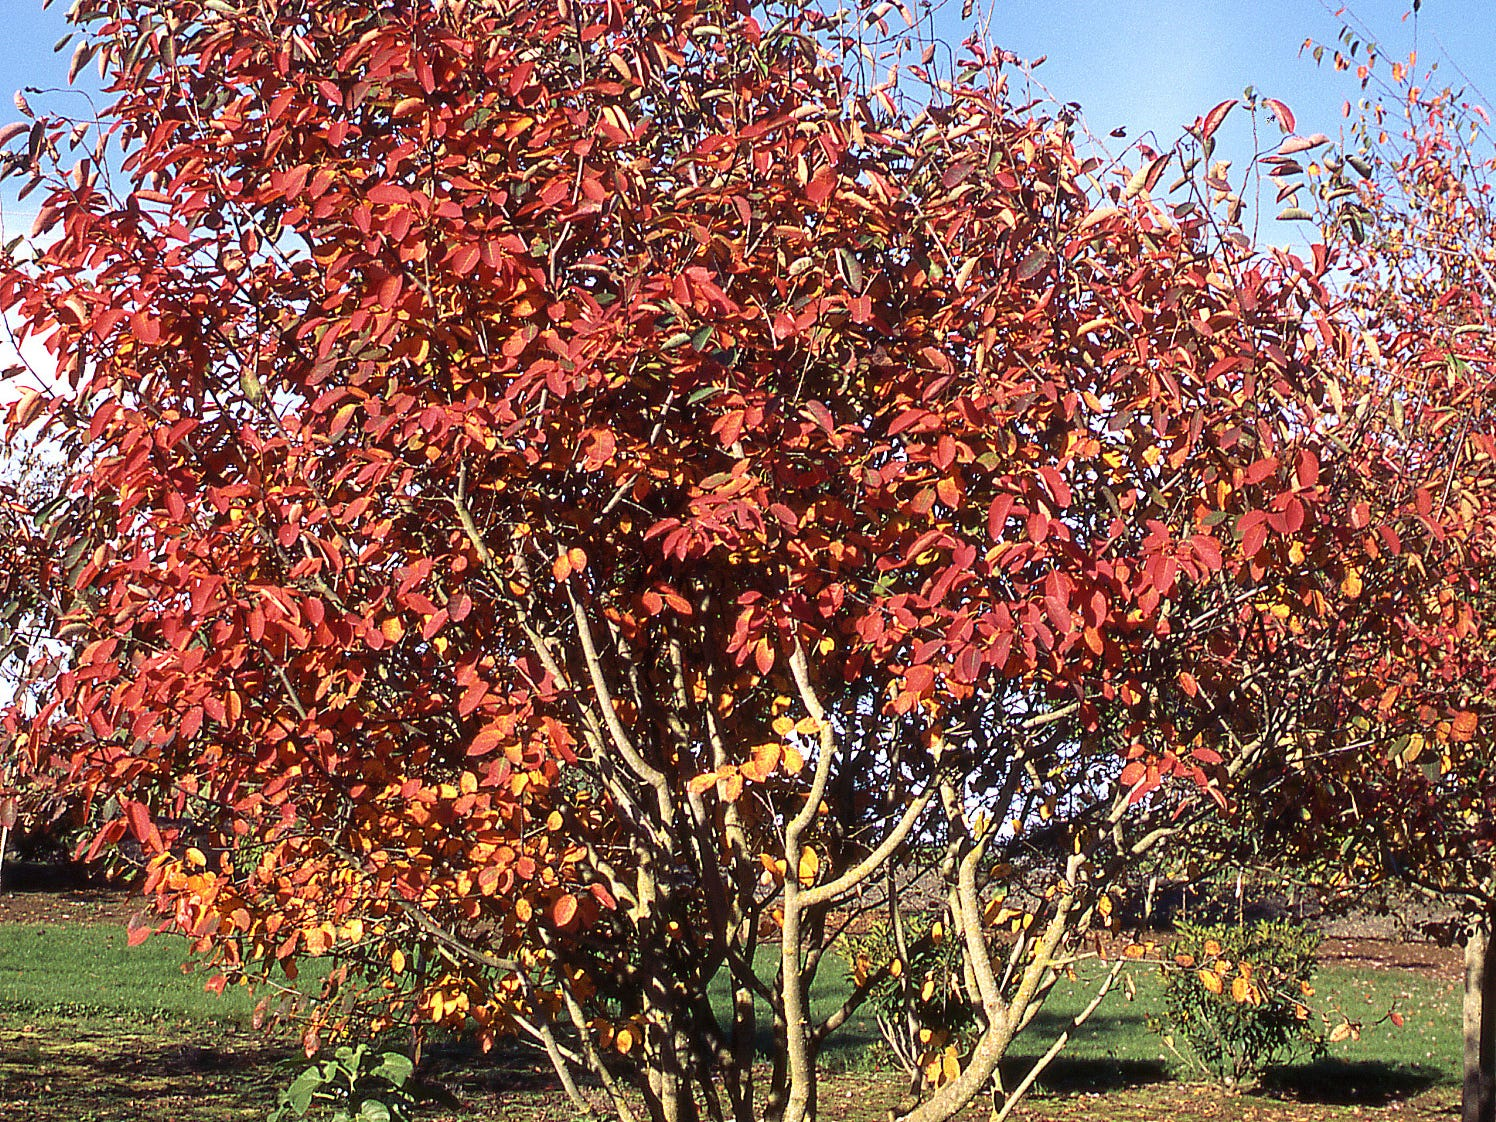 The Autumn Brilliance serviceberry tree lives up to its name.